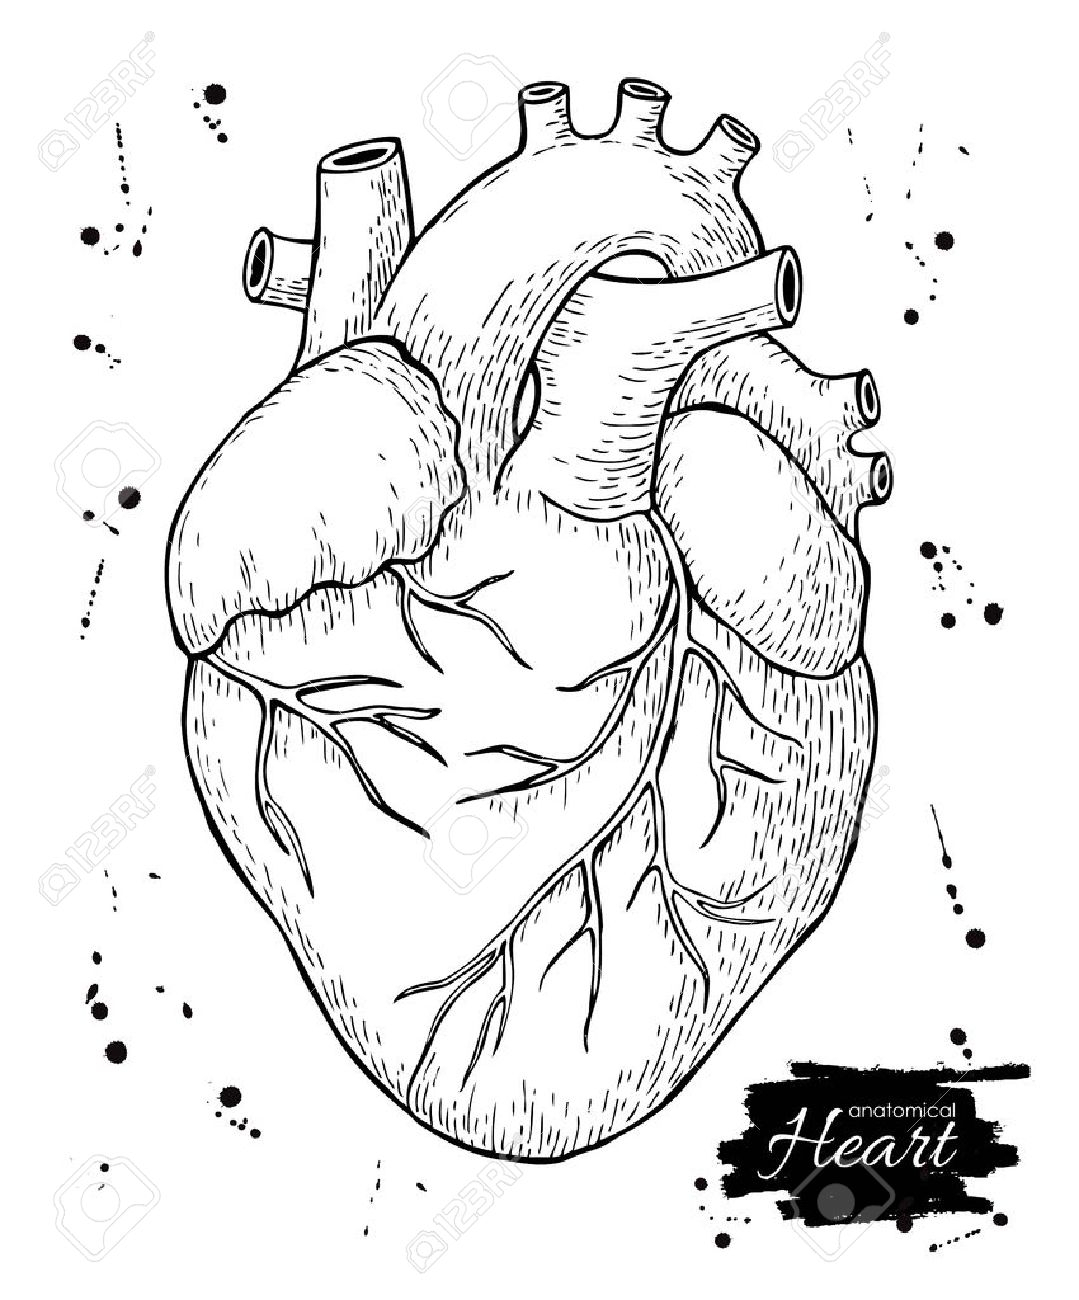 Anatomical Drawing Heart At Getdrawings